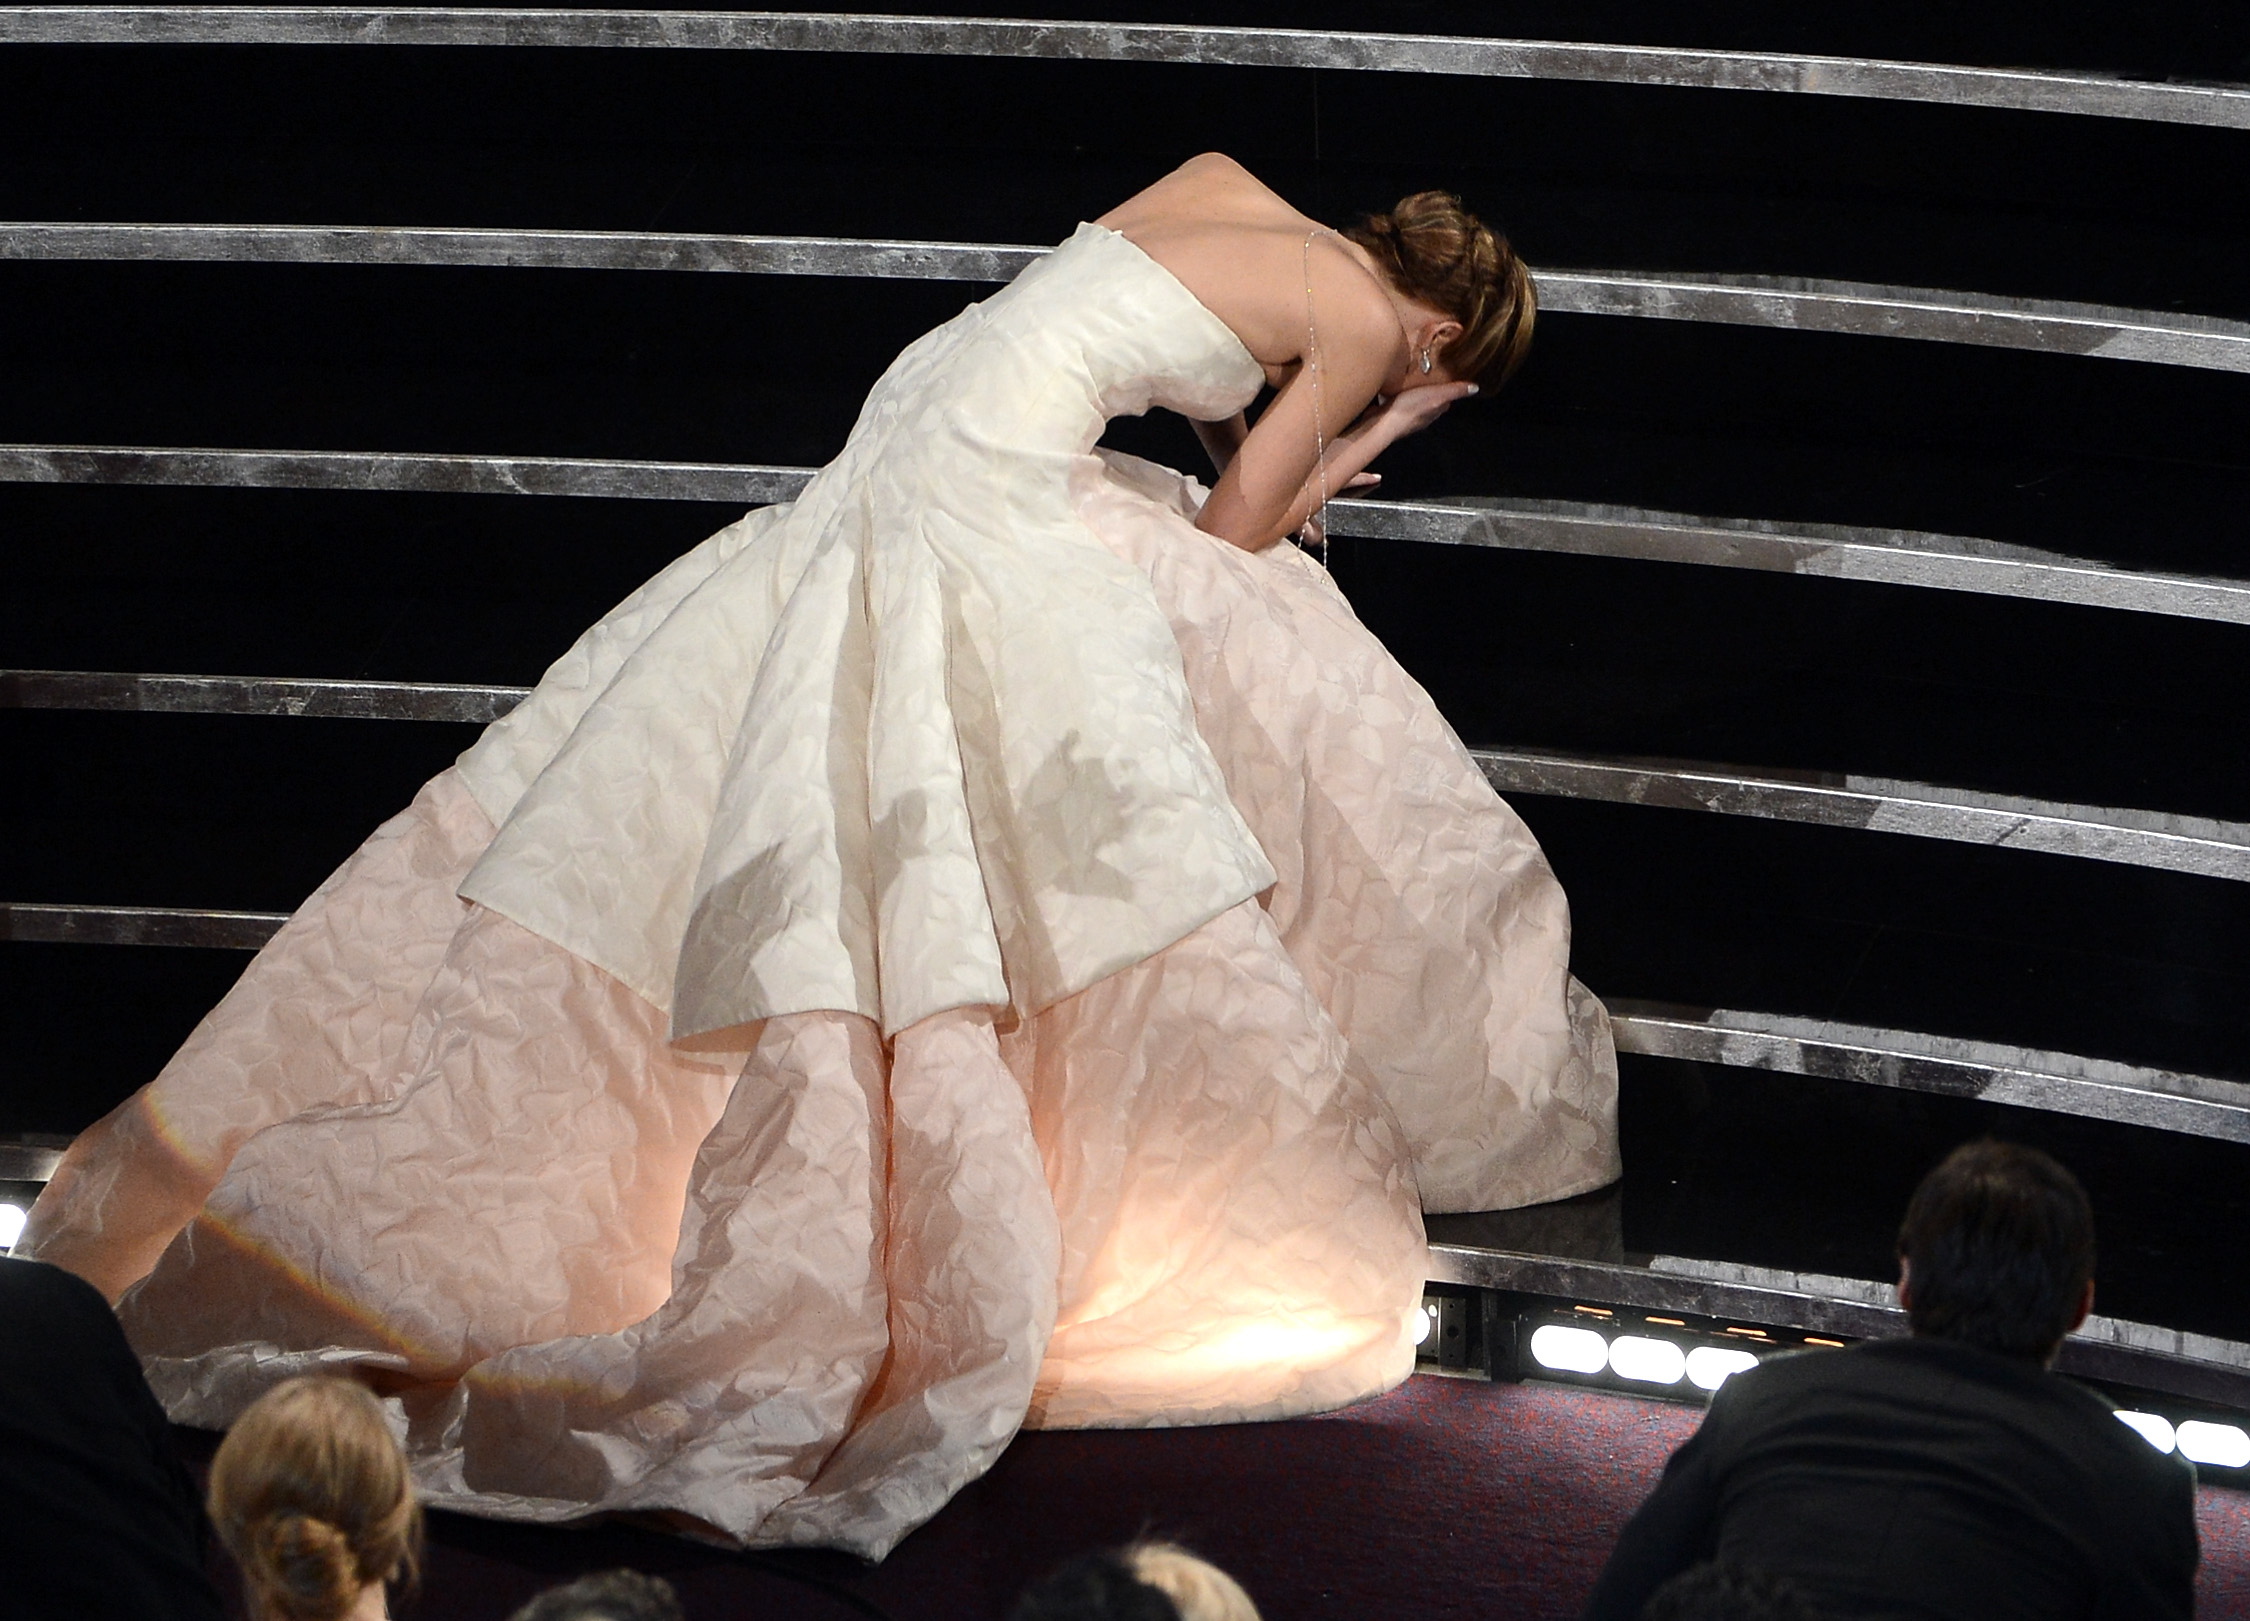 4036f6130d 5 Jennifer Lawrence Wardrobe Malfunctions She Successfully Turned Into  Comedy Gold